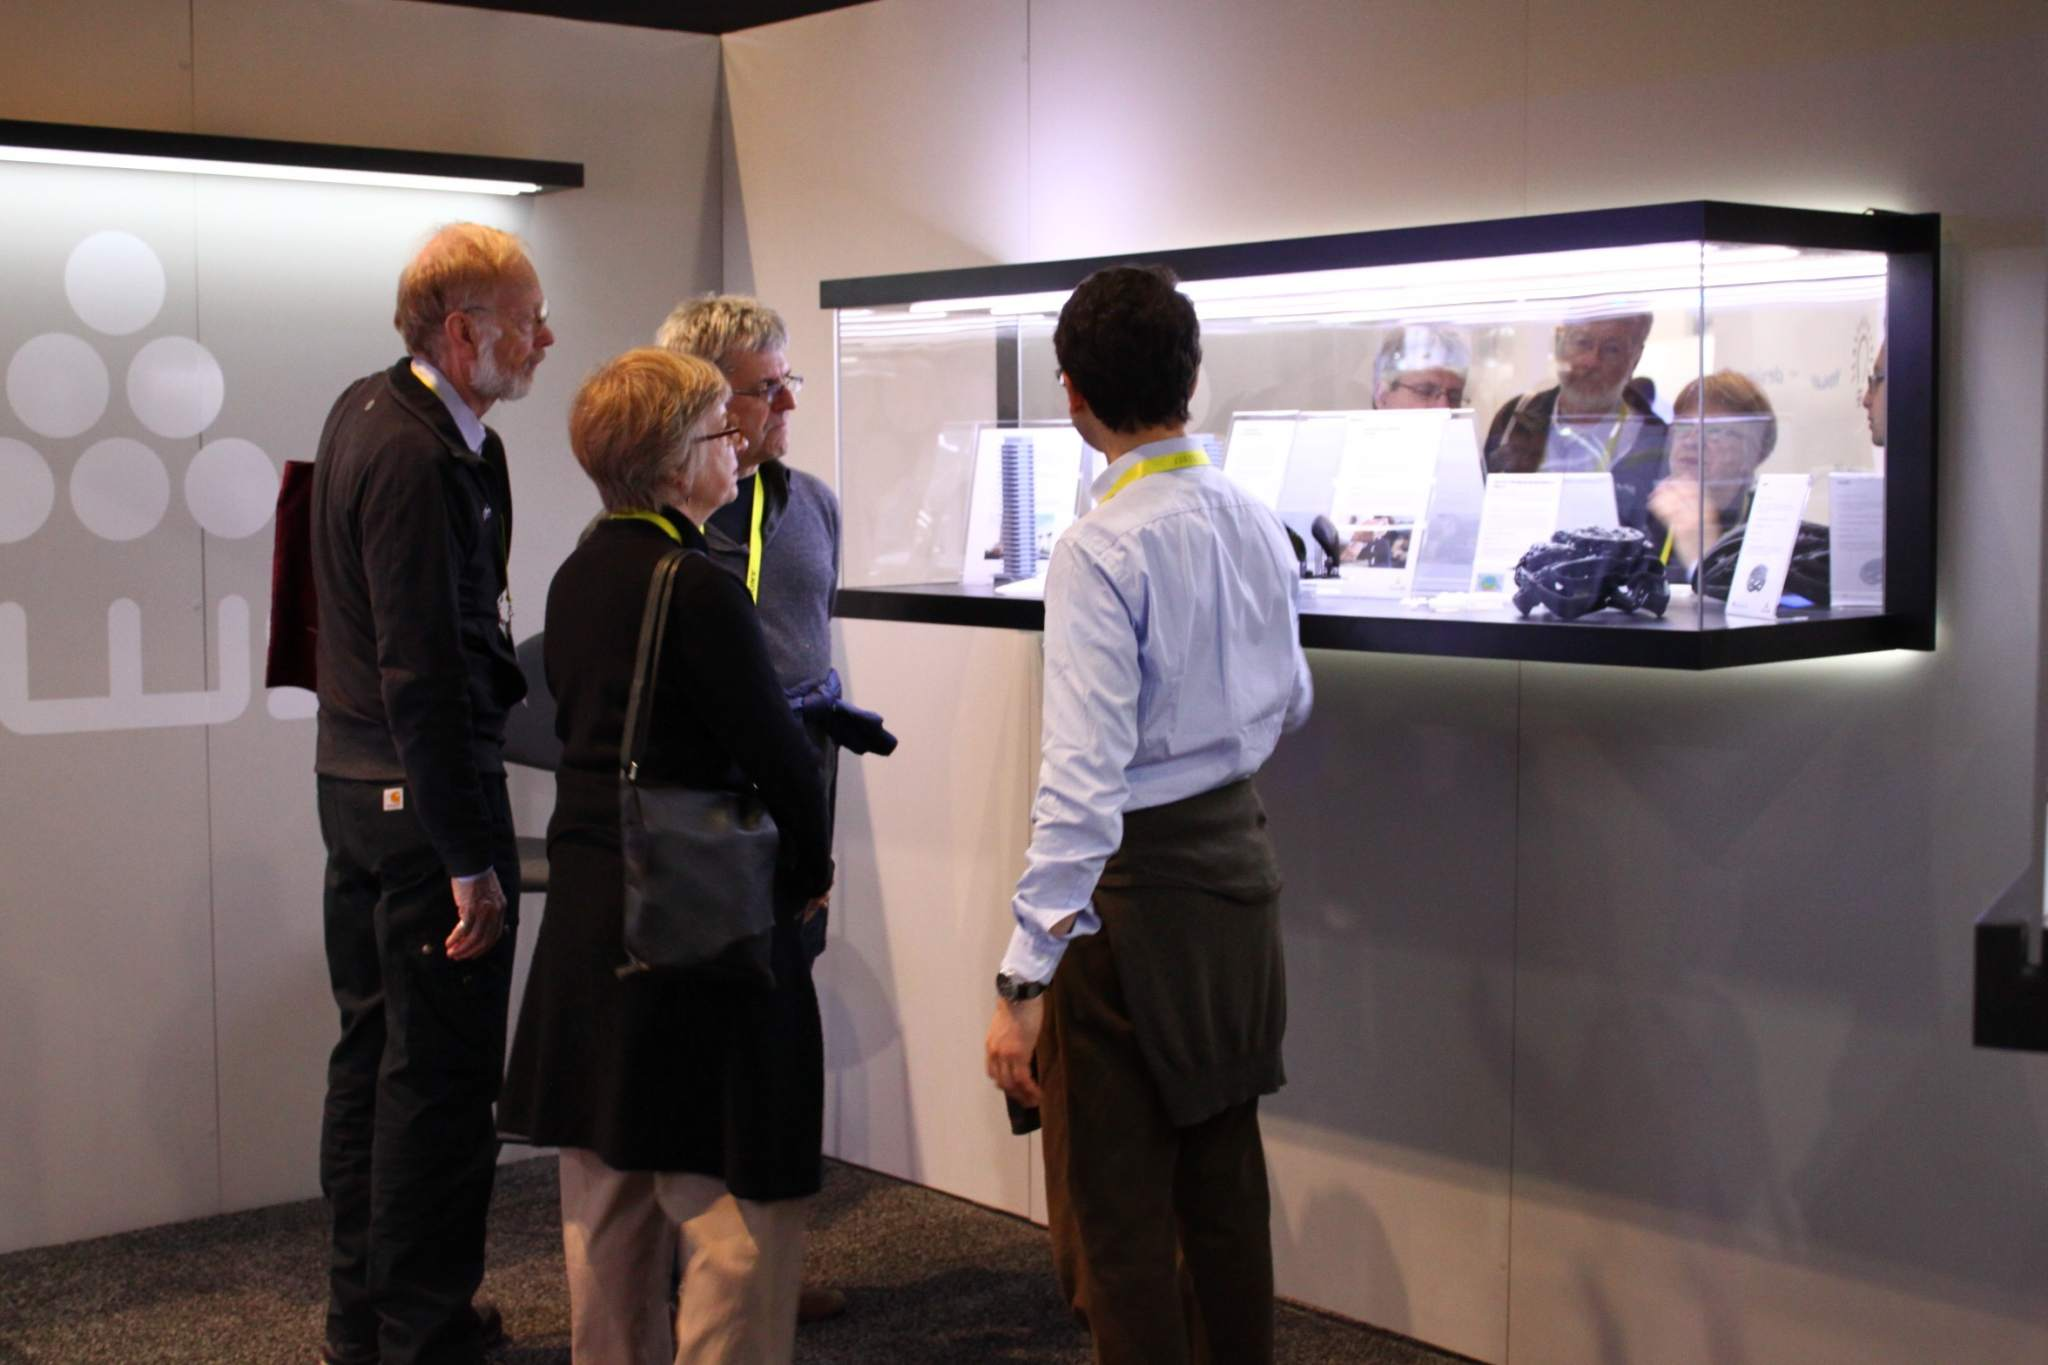 DWS had an enclosed booth at CES which was akin to a 3D printed art gallery. Photo via DWS.